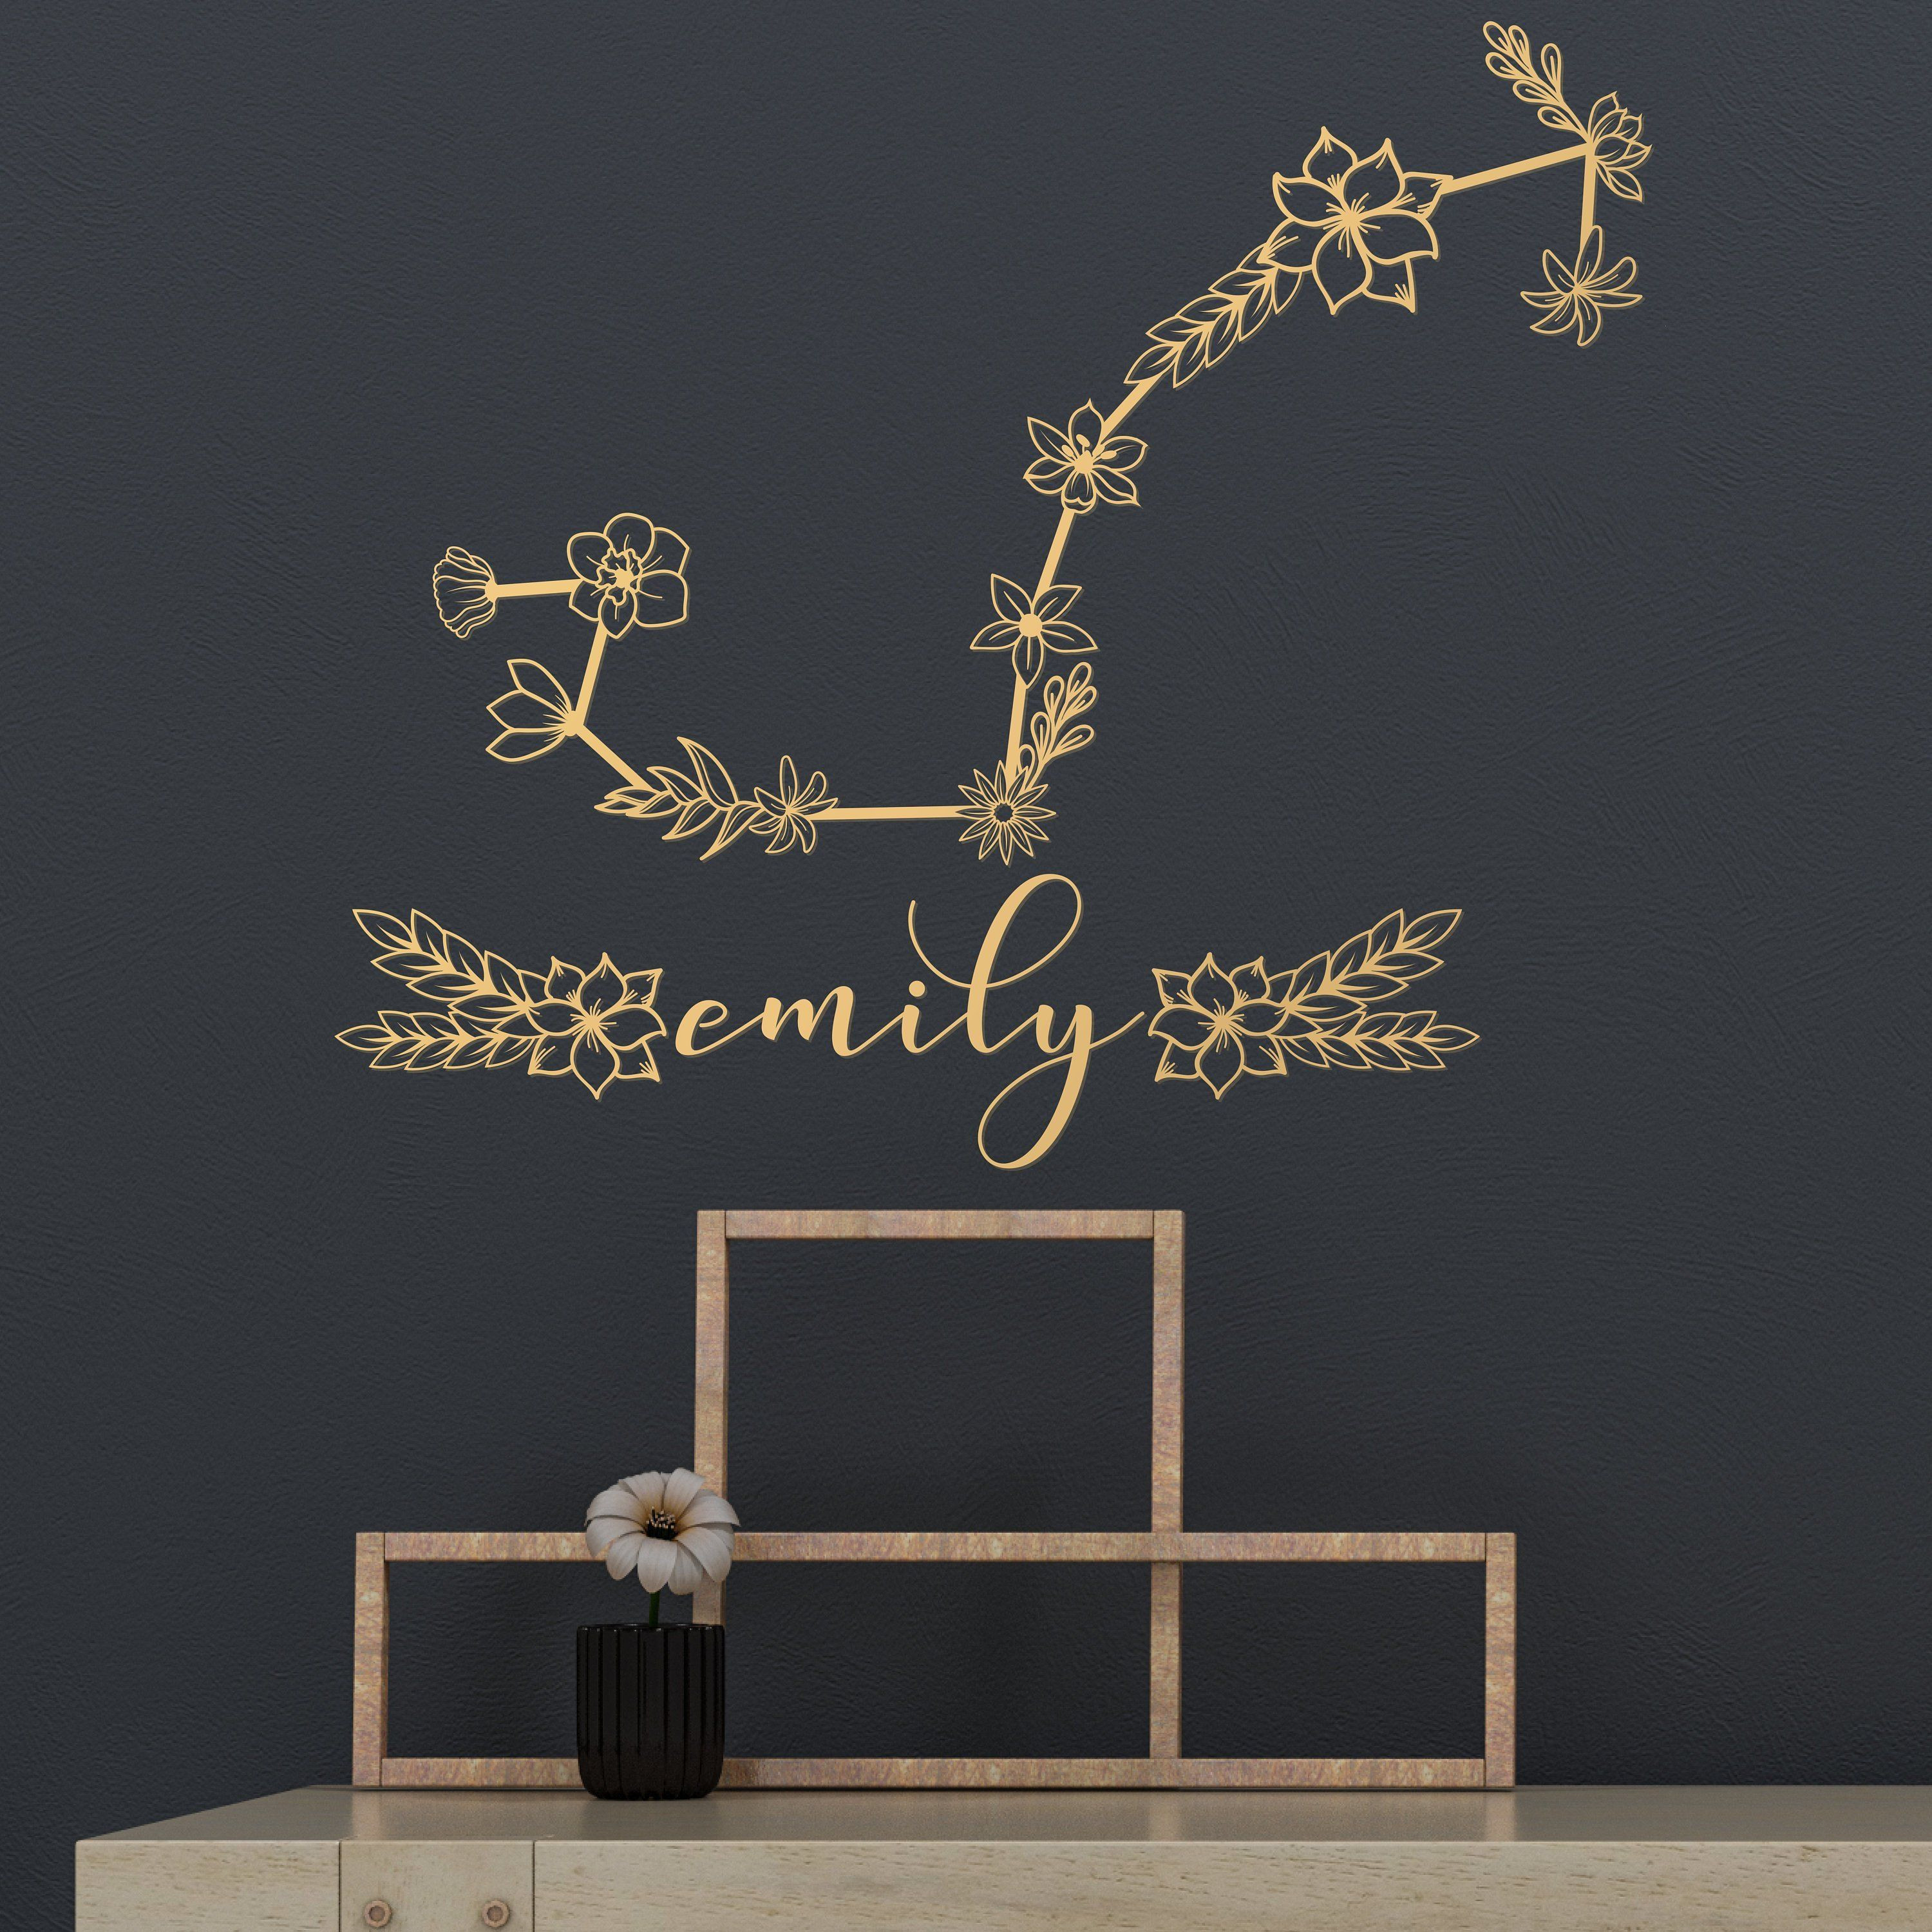 Scorpio Zodiac Constellation Decals Scorpio Zodiac Constellation Wall Sticker Astrological Sign Wall Art Sky Star Mural Constellation Decal Wall Signs Constellations